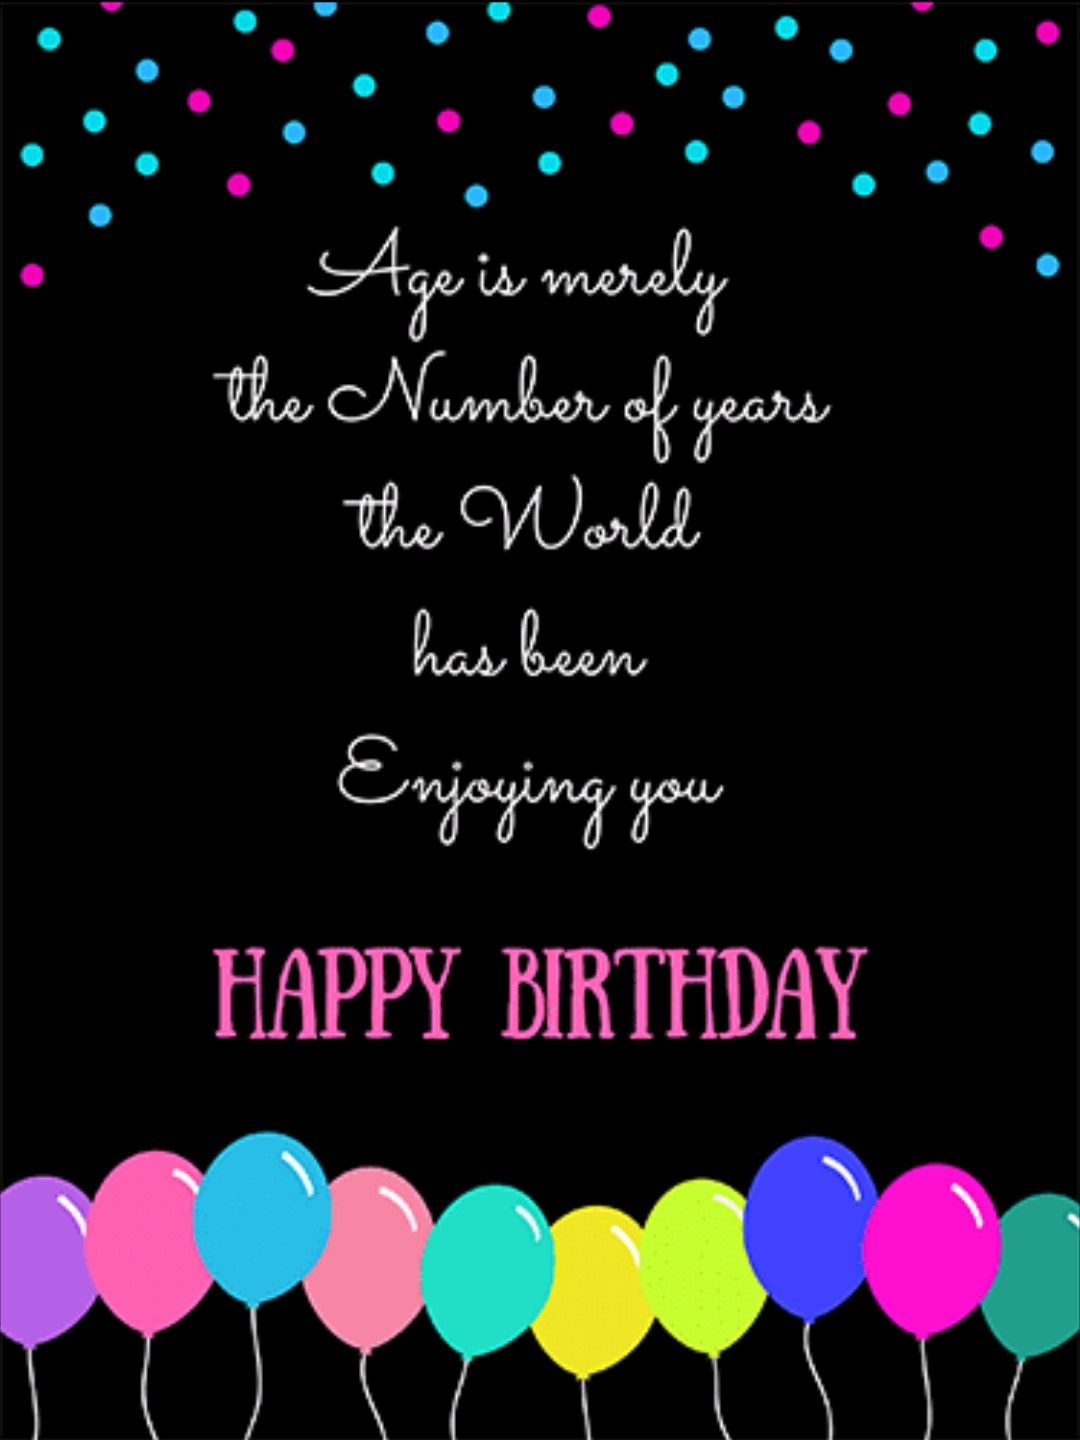 Happy Birthday Ecard Greetings Awesome Wishes Dad